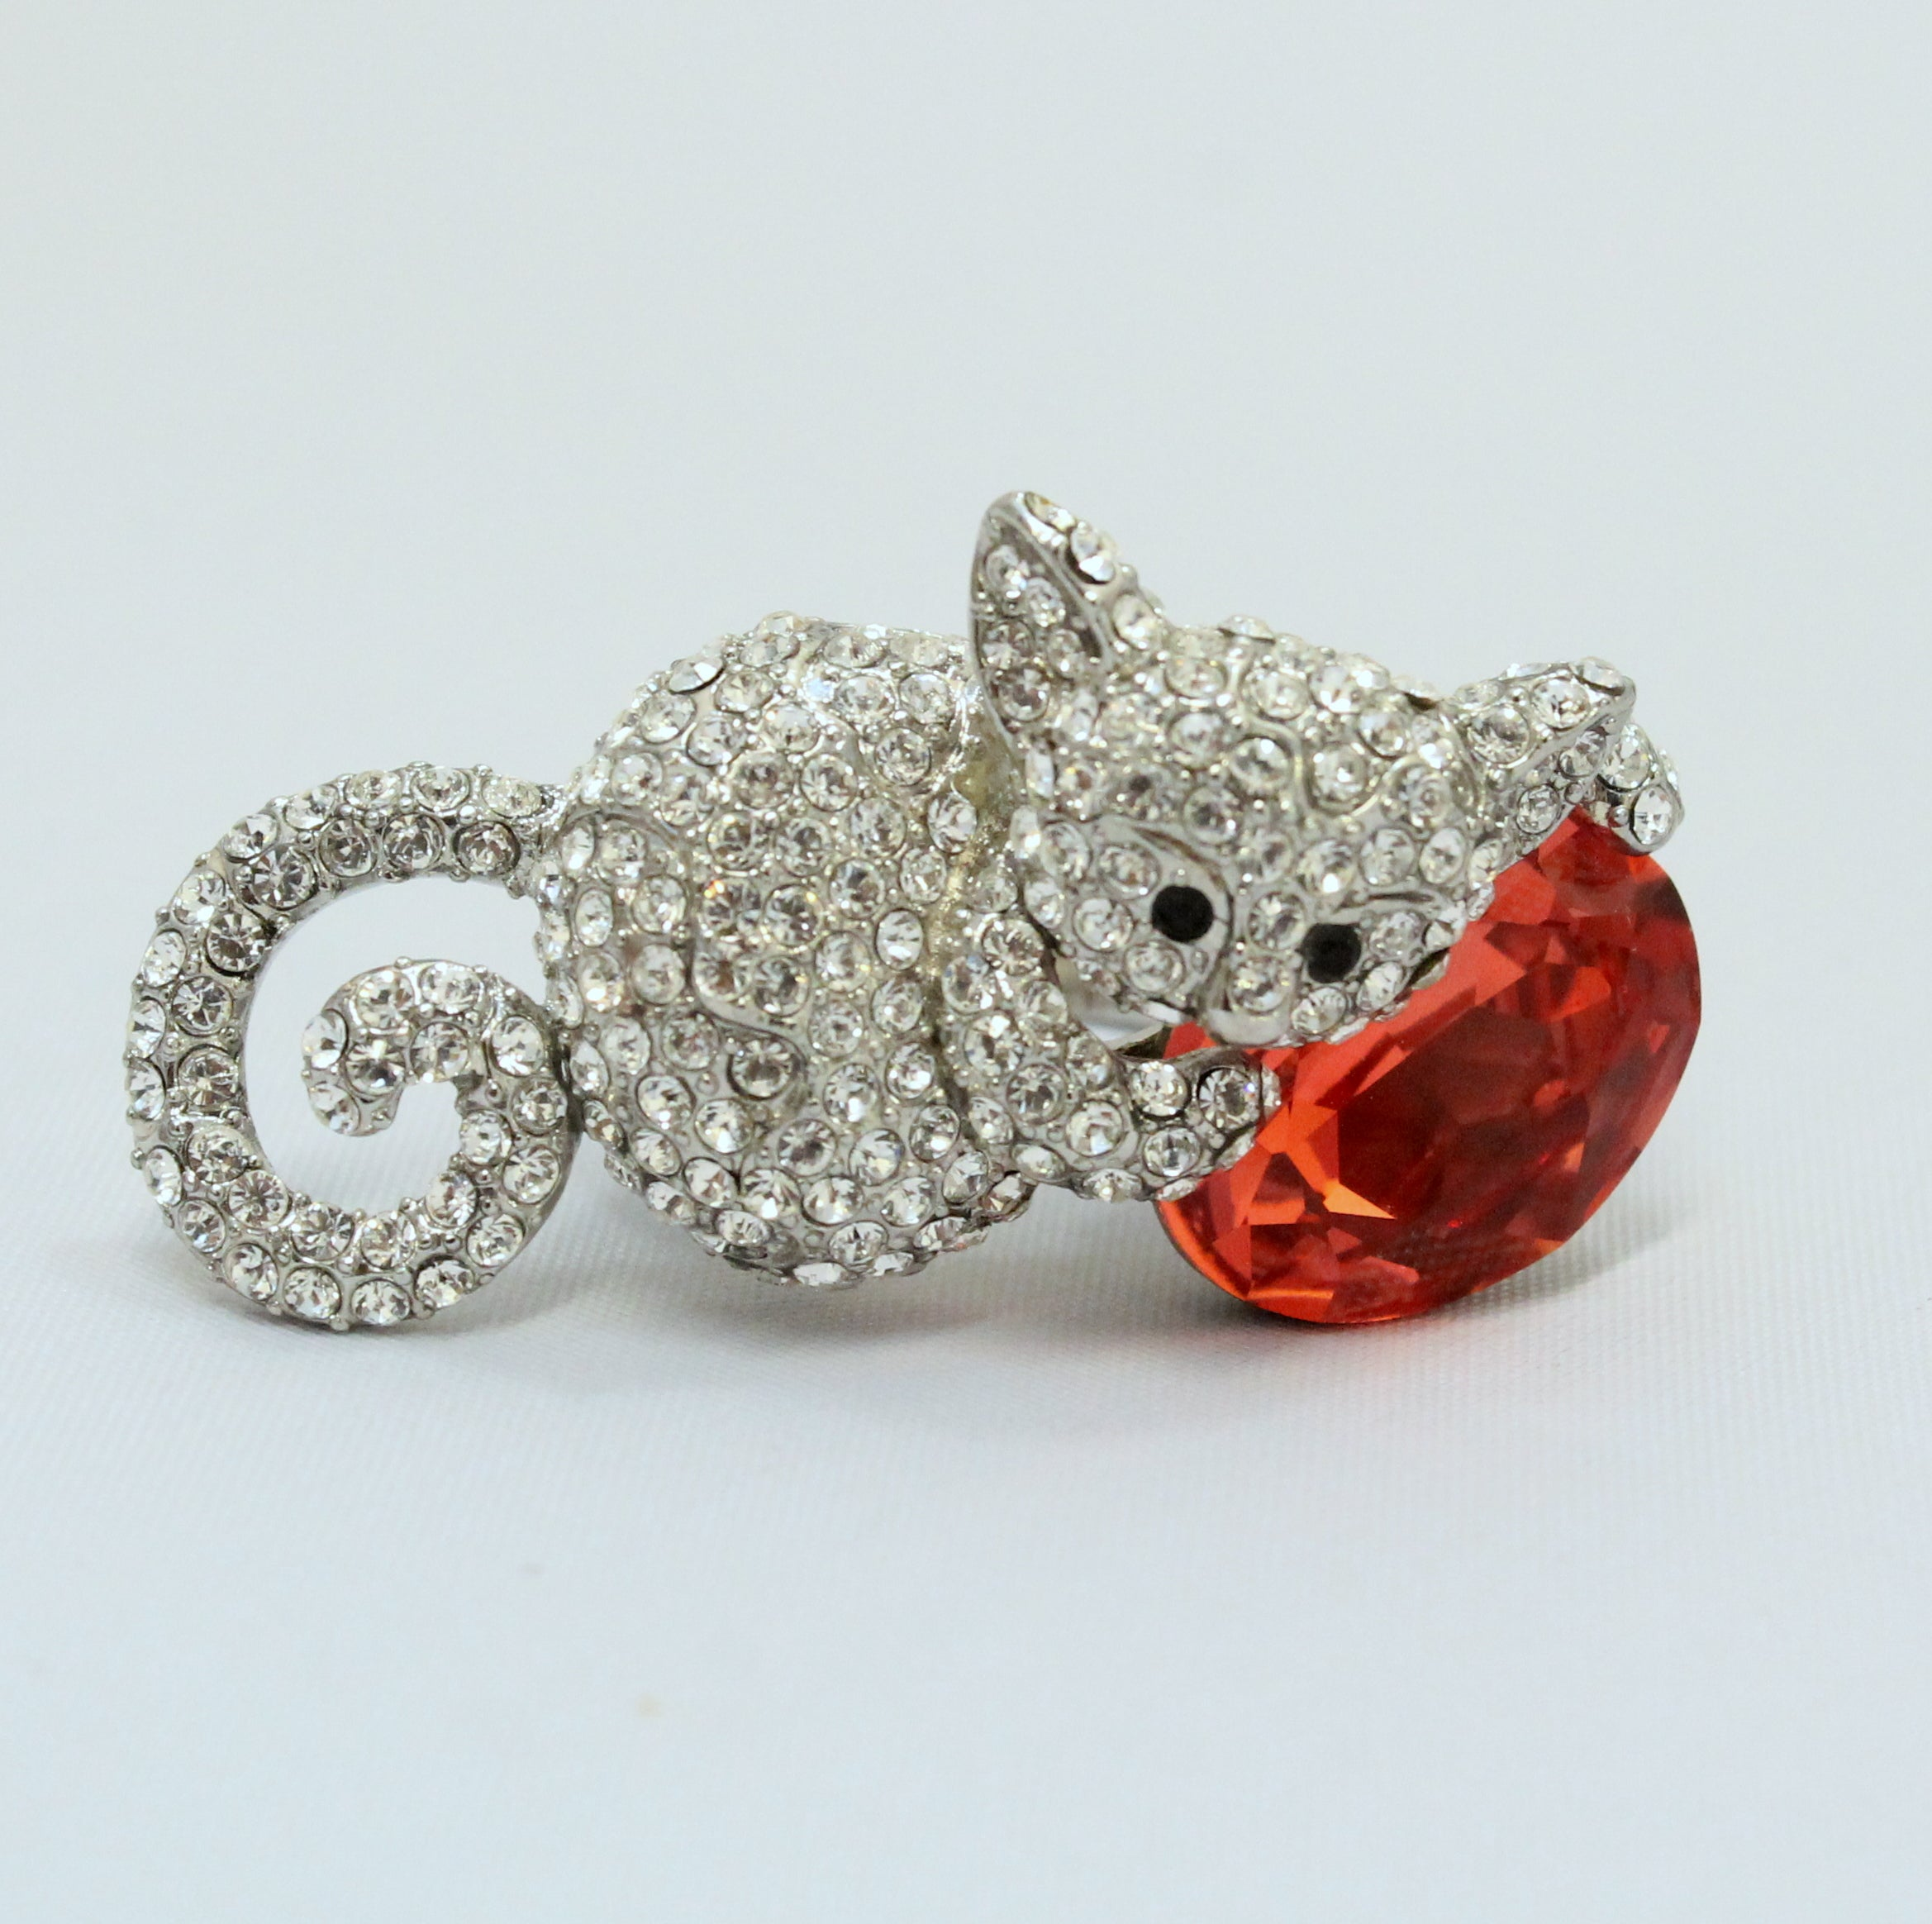 Misty - Kitty cat ring with with Swarovski